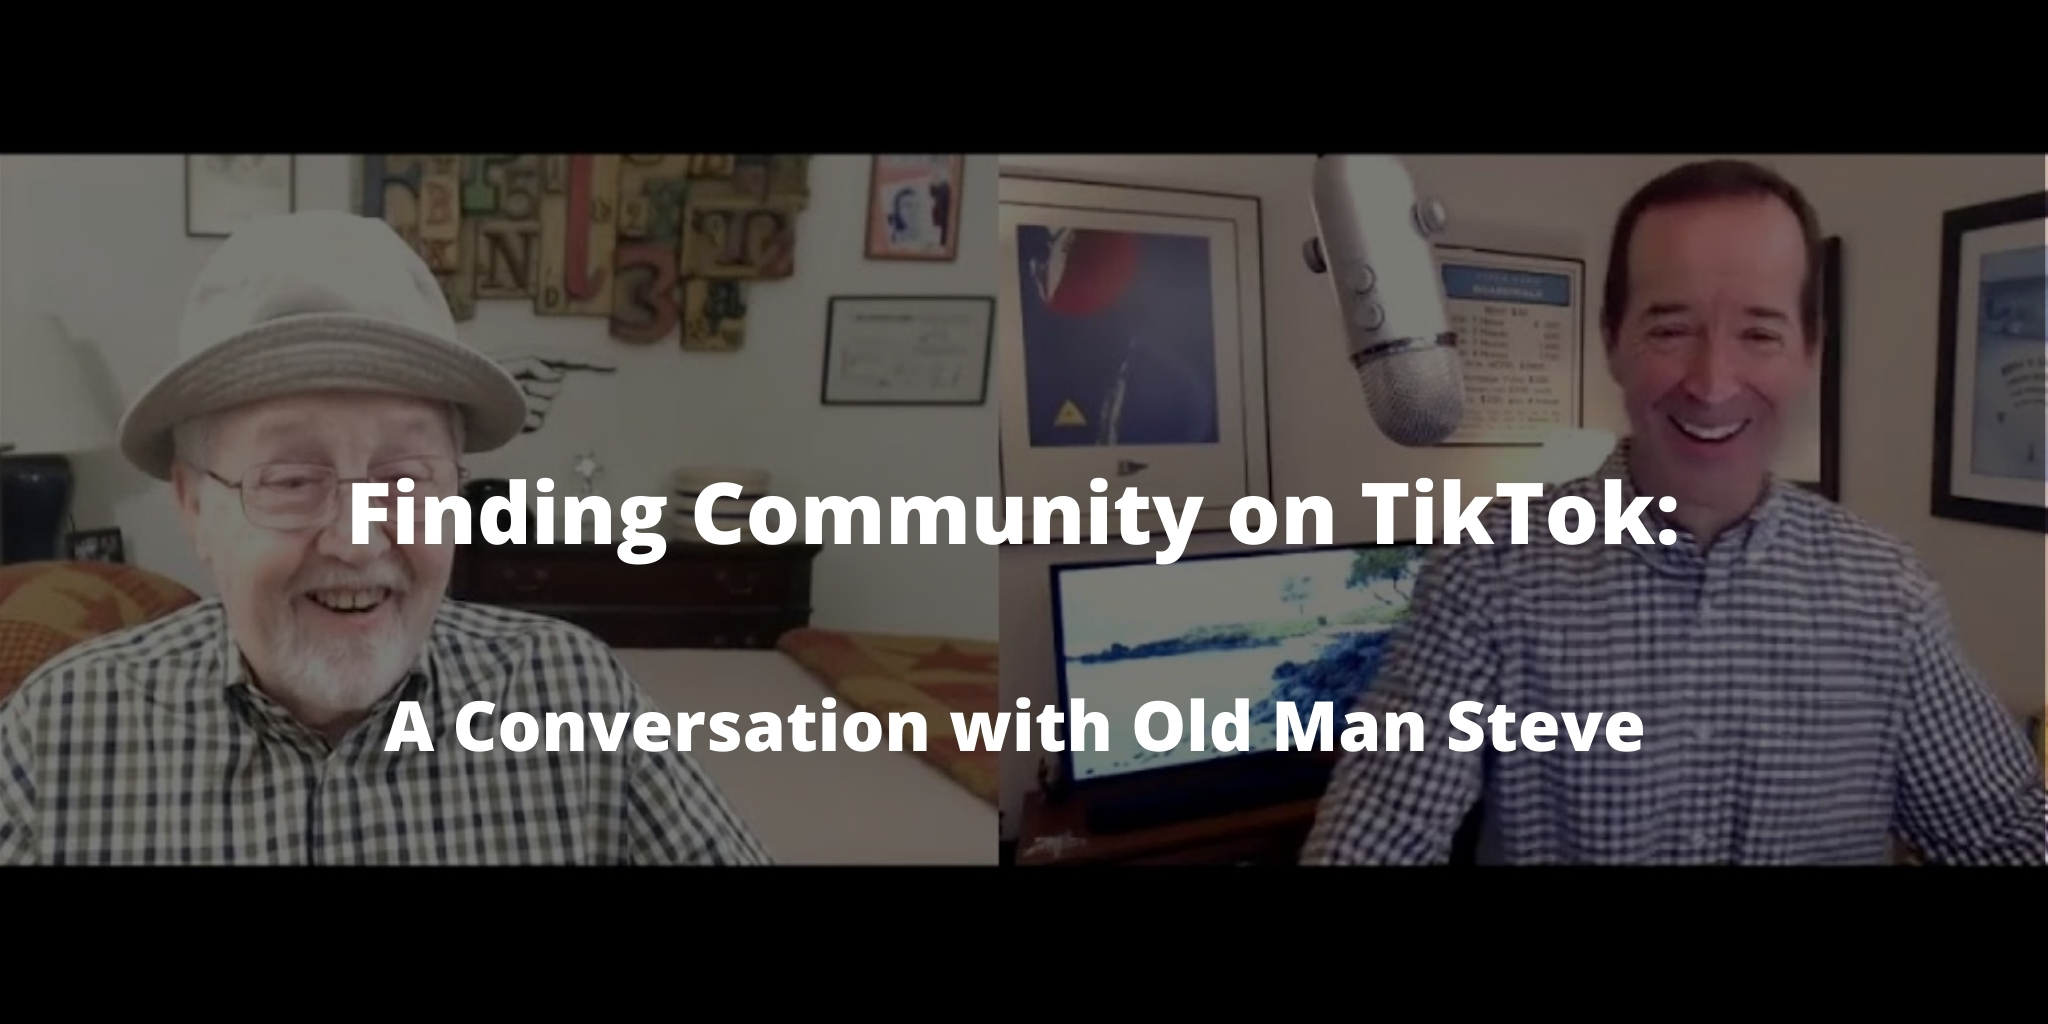 Finding Community on TikTok: A Conversation with Old Man Steve